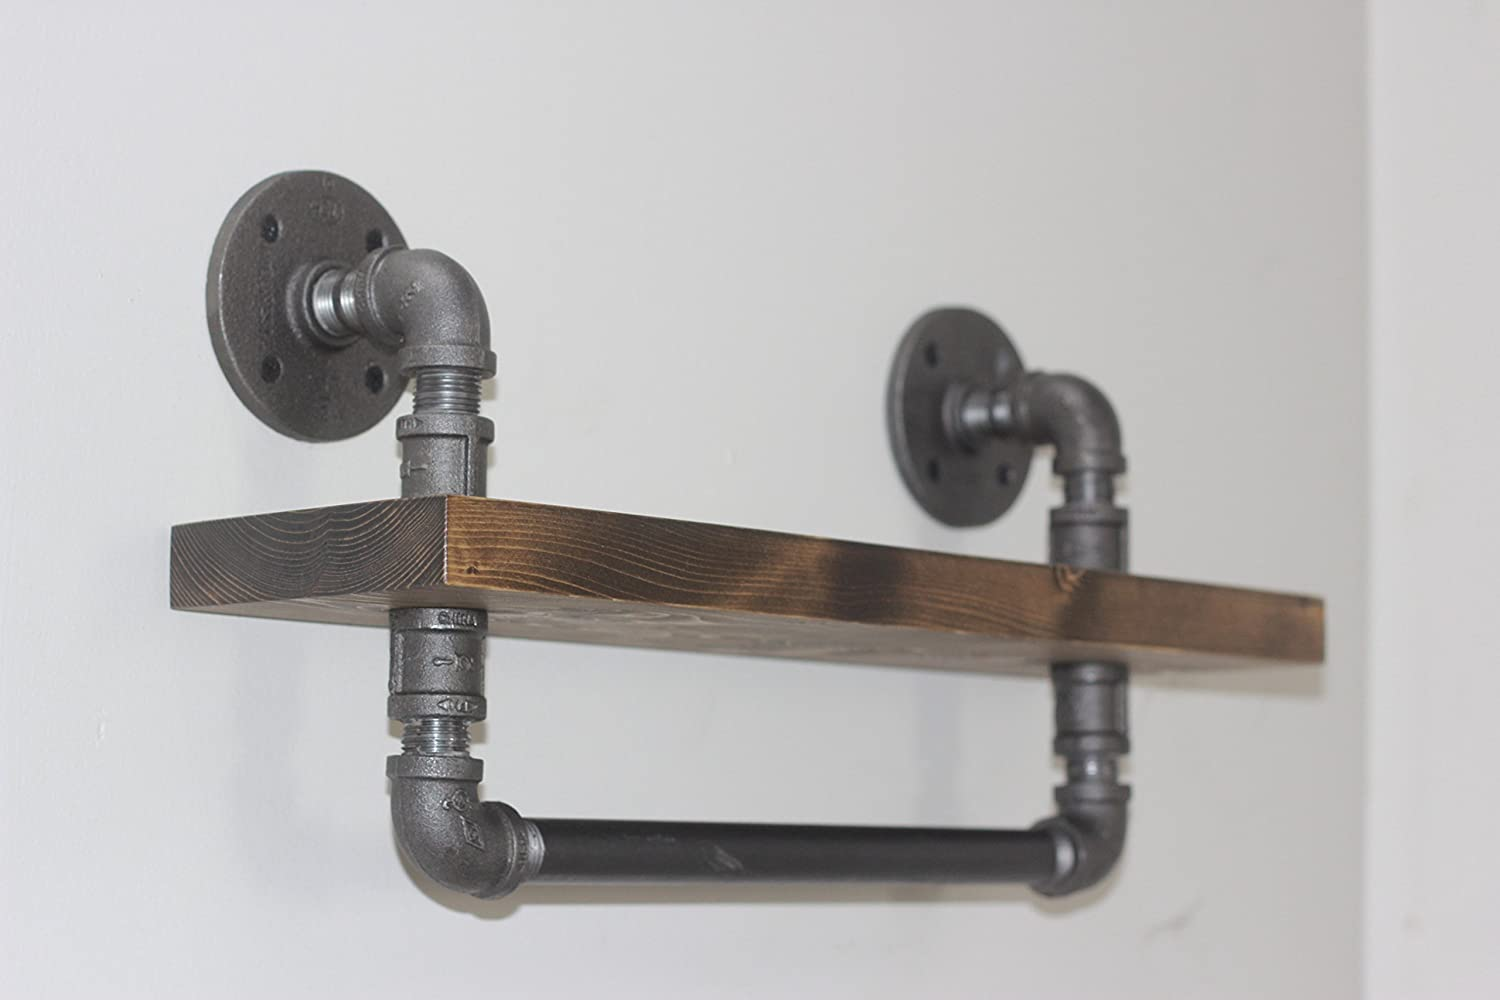 Industrial Style Bathroom Shelf With Towel Bar, Rustic DIY Shelves with Towel Rack, Ships from Detroit, MI